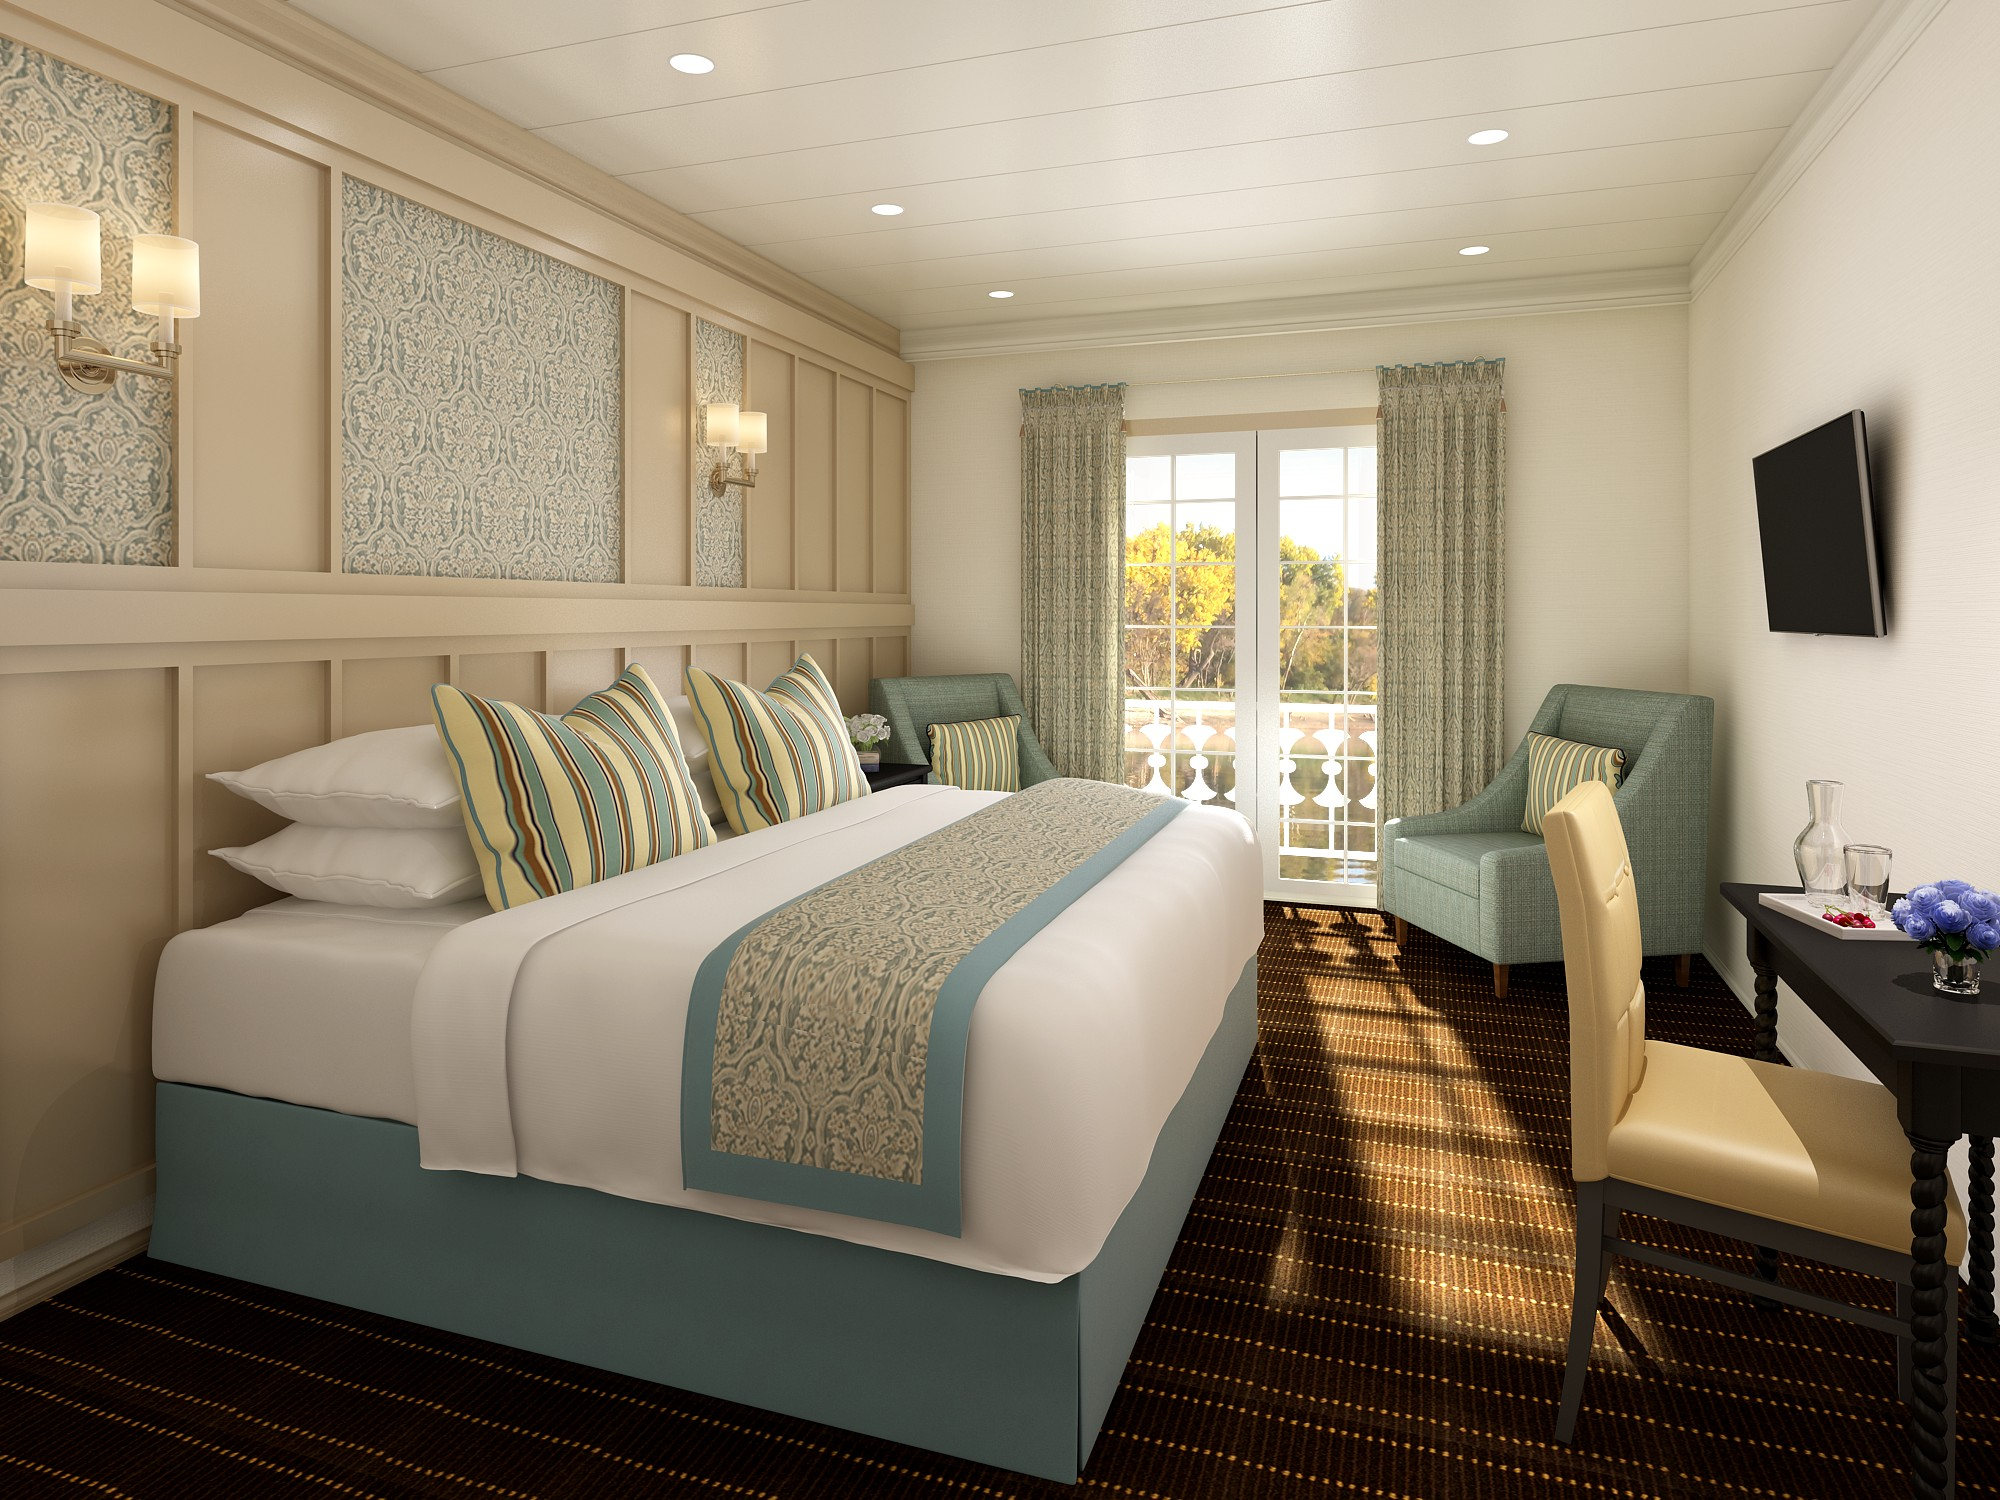 French America Line LouisianeFrench America Line Lousiana French America Line French Balcony Stateroom Persepective.jpg